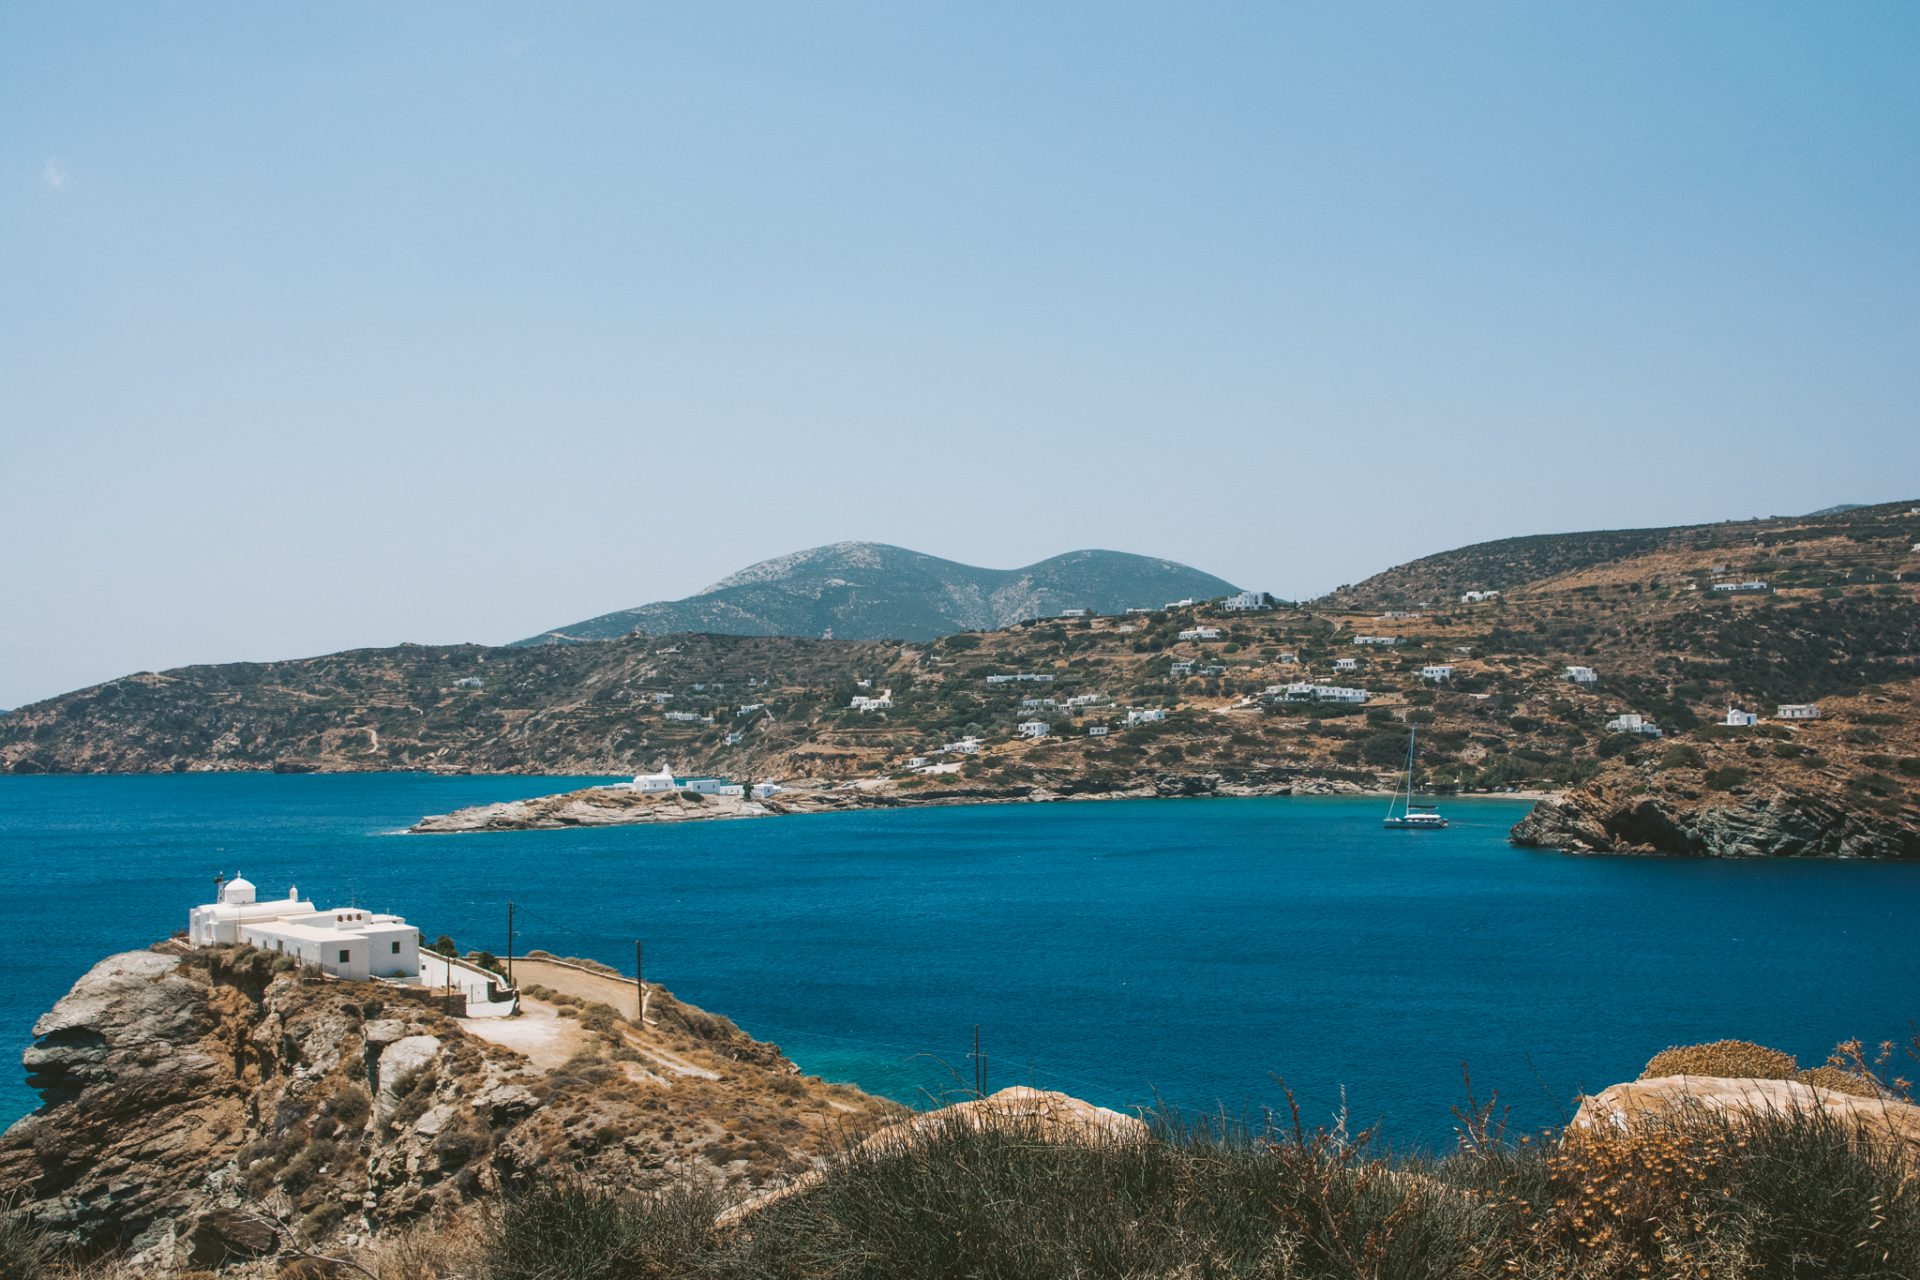 View from Kavos Hotel, Sifnos